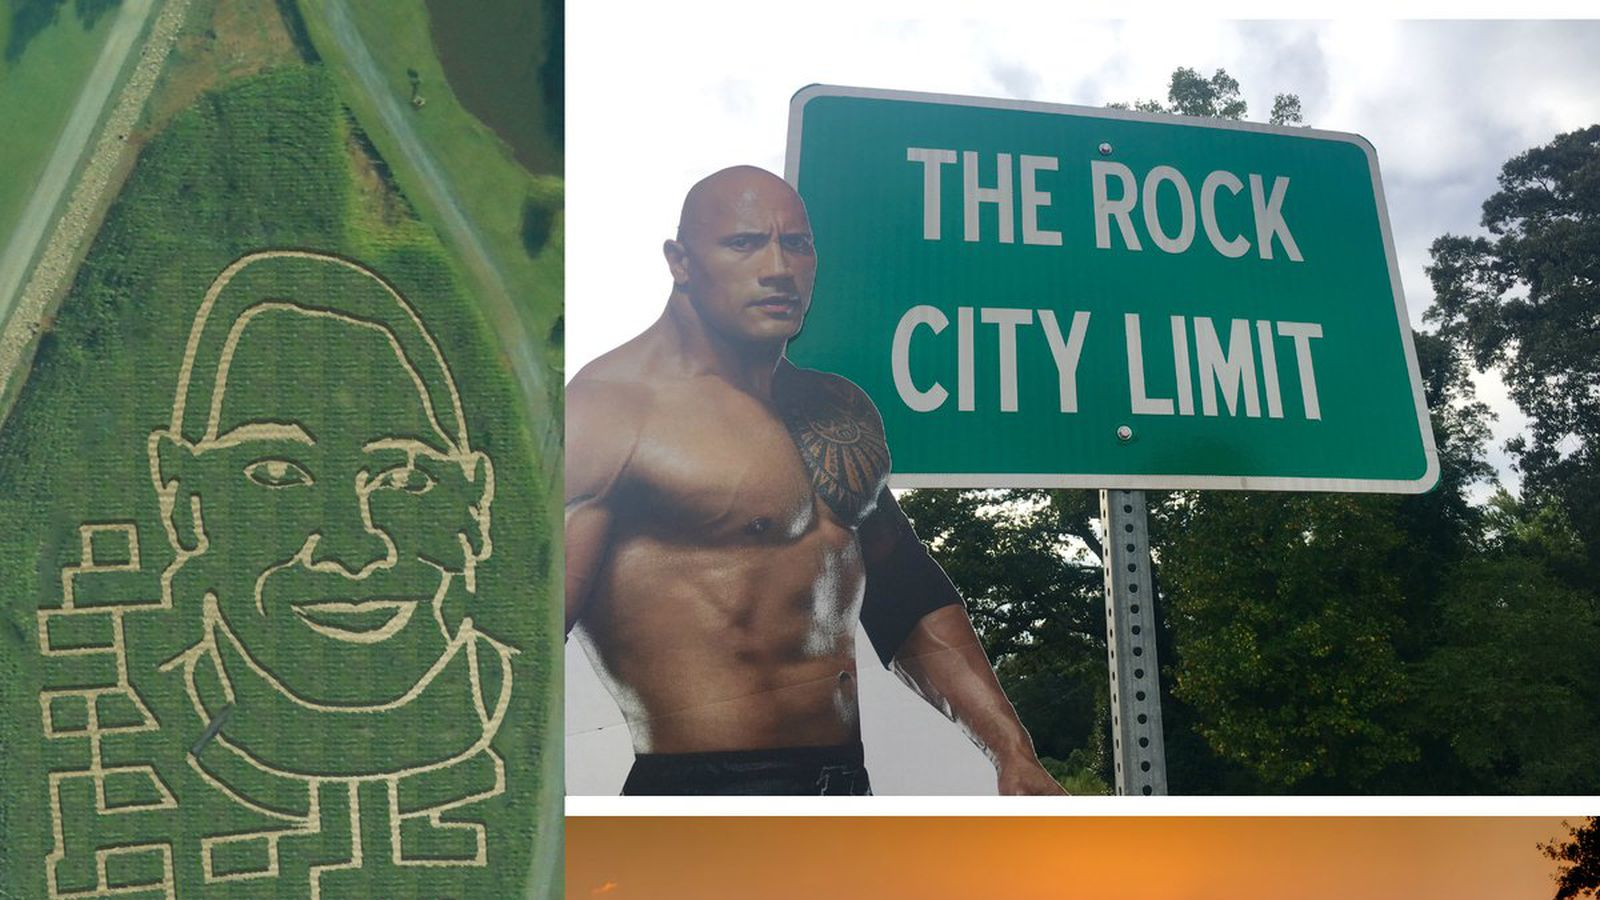 Would you say this Dwayne Johnson corn tribute rocks, or would you say it's a-maize-in?